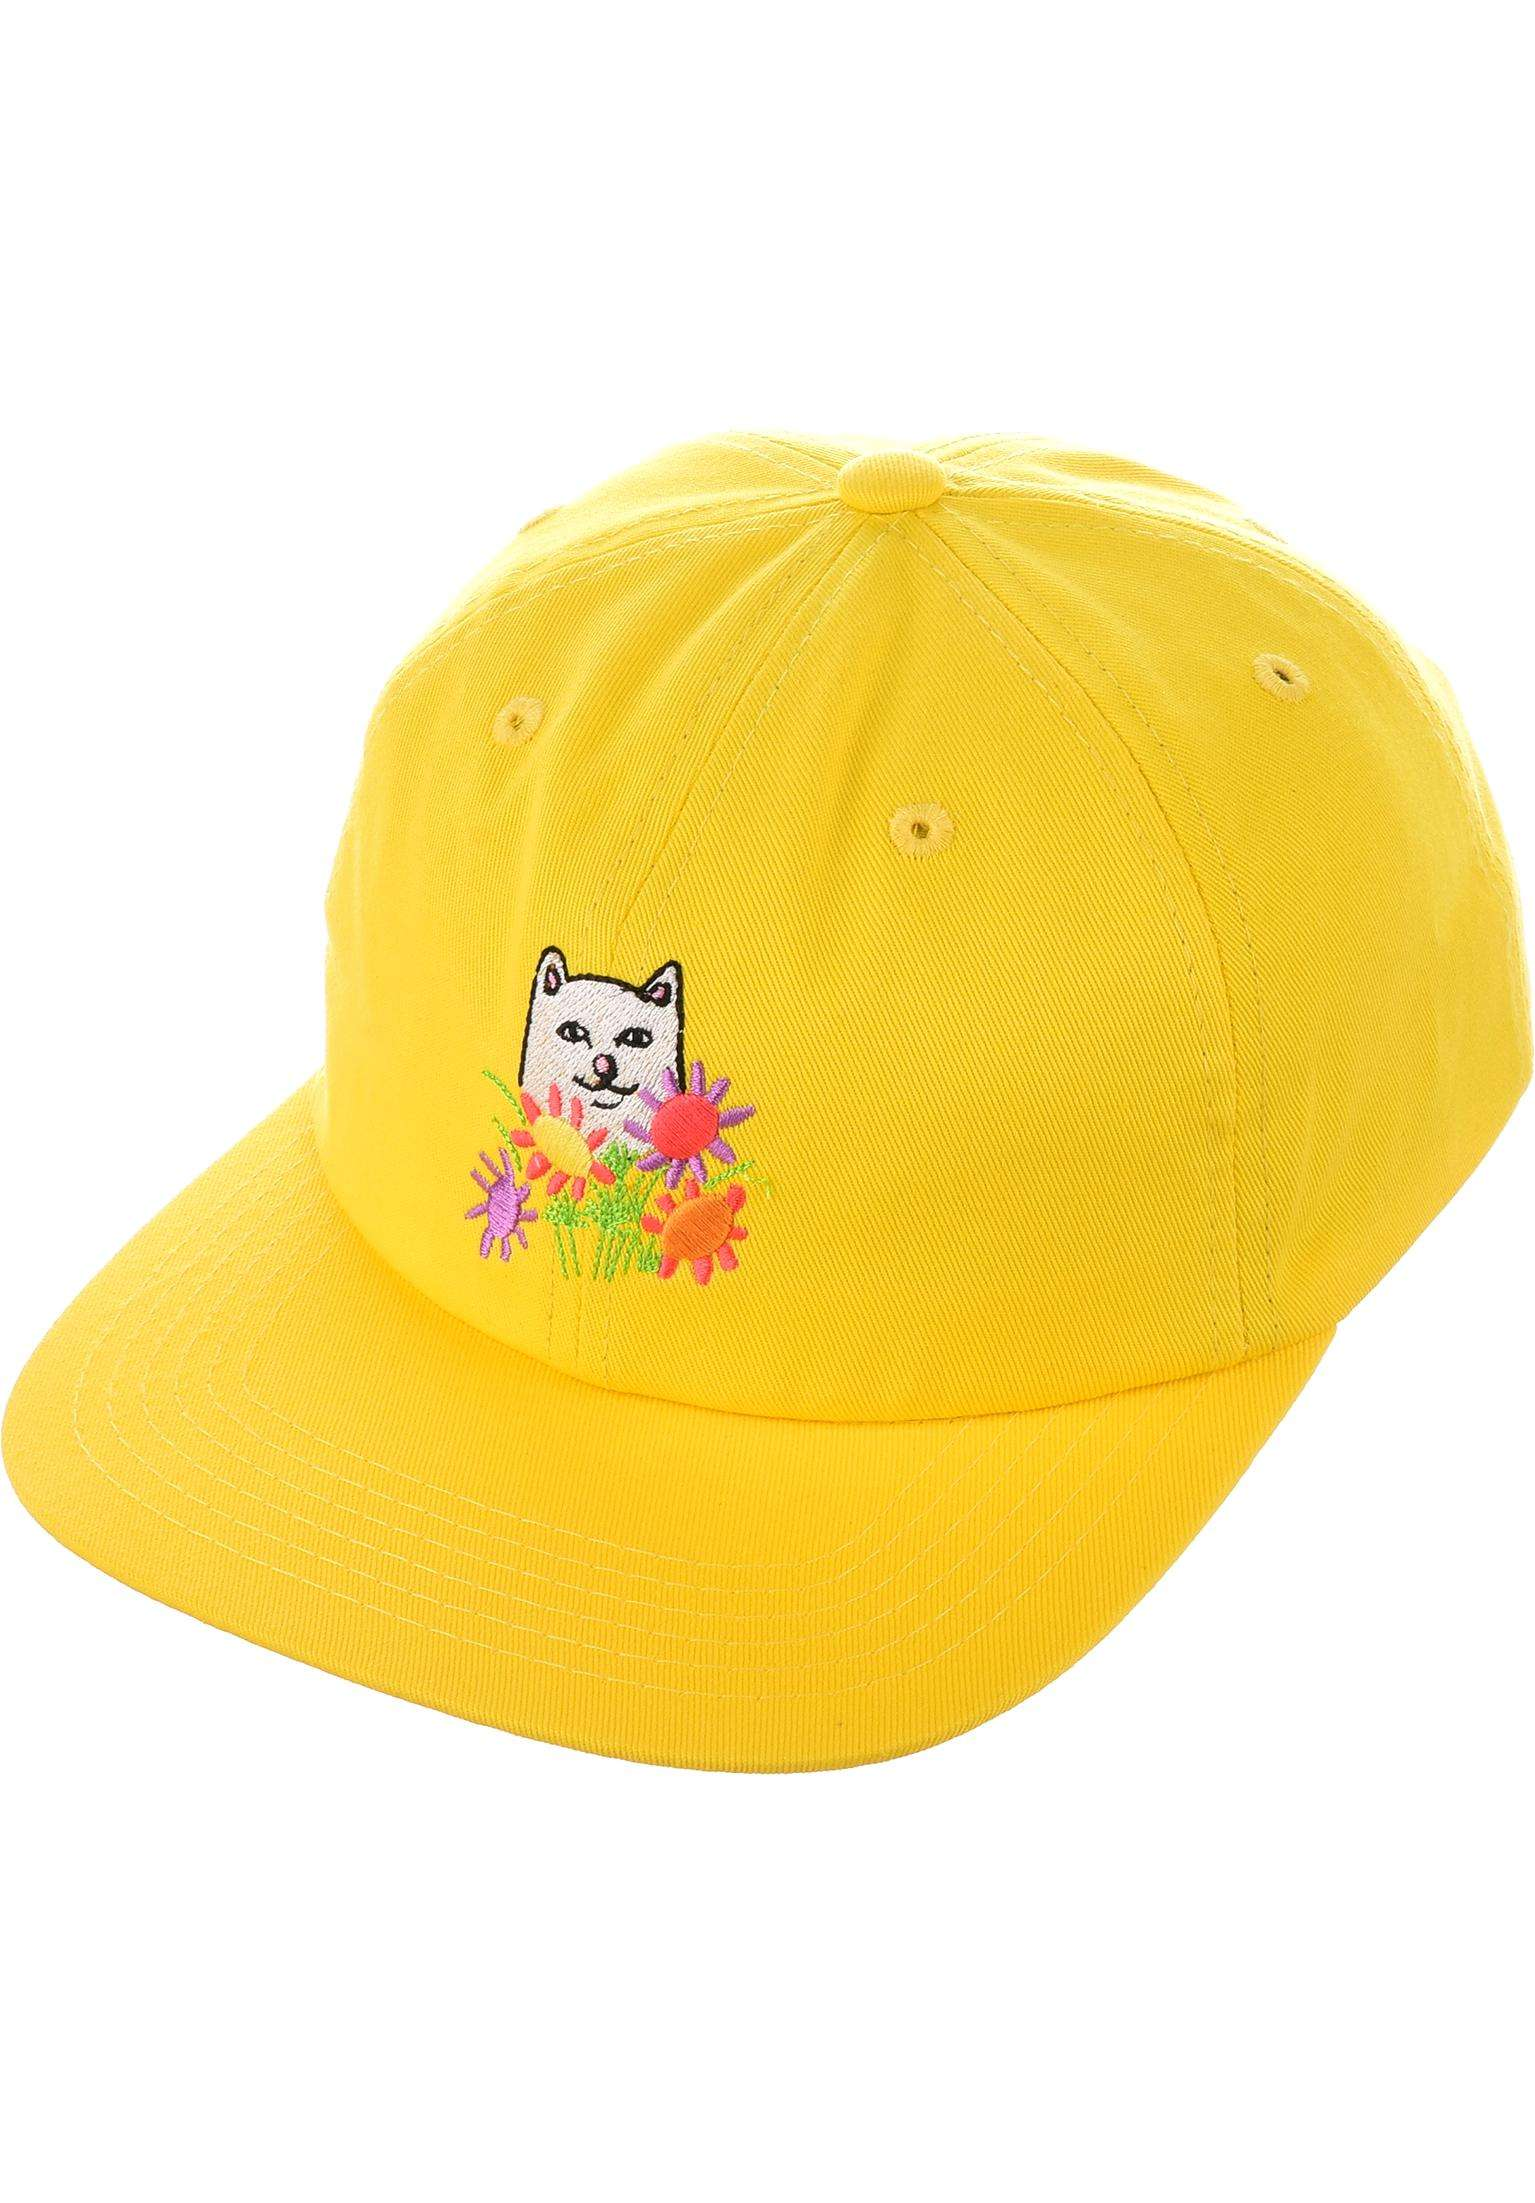 fadab36c9f9 Nermcasso Strapback Rip N Dip Caps in yellow for Men